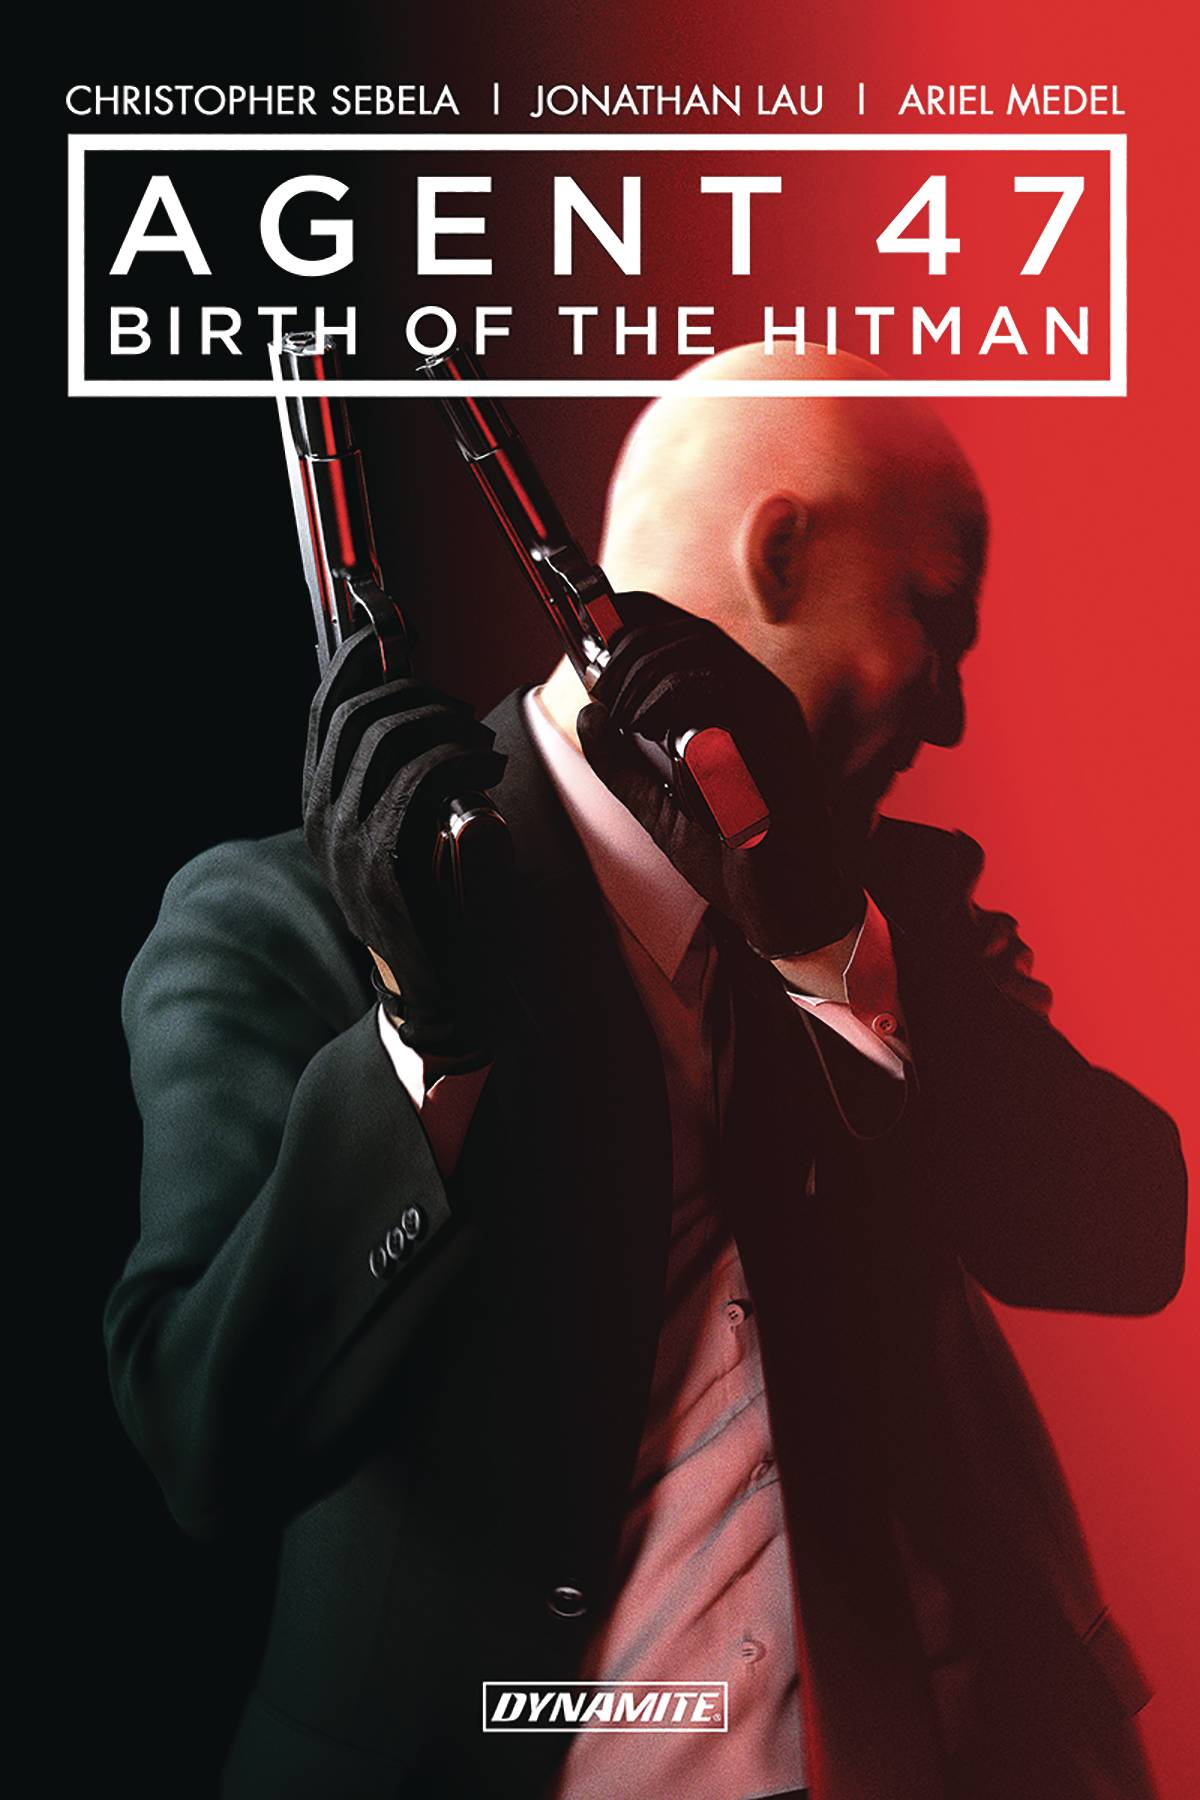 Agent 47 GN Vol 1 Birth of Hitman